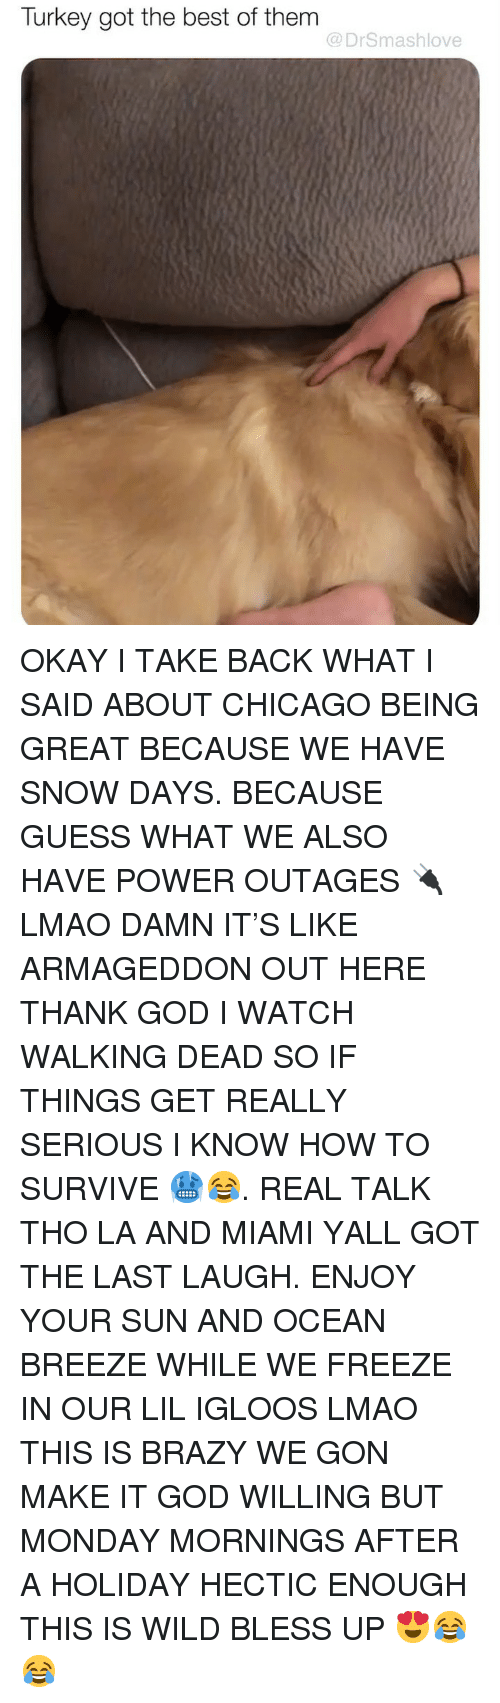 Mornings: Turkey got the best of them  @DrSmashlove OKAY I TAKE BACK WHAT I SAID ABOUT CHICAGO BEING GREAT BECAUSE WE HAVE SNOW DAYS. BECAUSE GUESS WHAT WE ALSO HAVE POWER OUTAGES 🔌 LMAO DAMN IT'S LIKE ARMAGEDDON OUT HERE THANK GOD I WATCH WALKING DEAD SO IF THINGS GET REALLY SERIOUS I KNOW HOW TO SURVIVE 🥶😂. REAL TALK THO LA AND MIAMI YALL GOT THE LAST LAUGH. ENJOY YOUR SUN AND OCEAN BREEZE WHILE WE FREEZE IN OUR LIL IGLOOS LMAO THIS IS BRAZY WE GON MAKE IT GOD WILLING BUT MONDAY MORNINGS AFTER A HOLIDAY HECTIC ENOUGH THIS IS WILD BLESS UP 😍😂😂